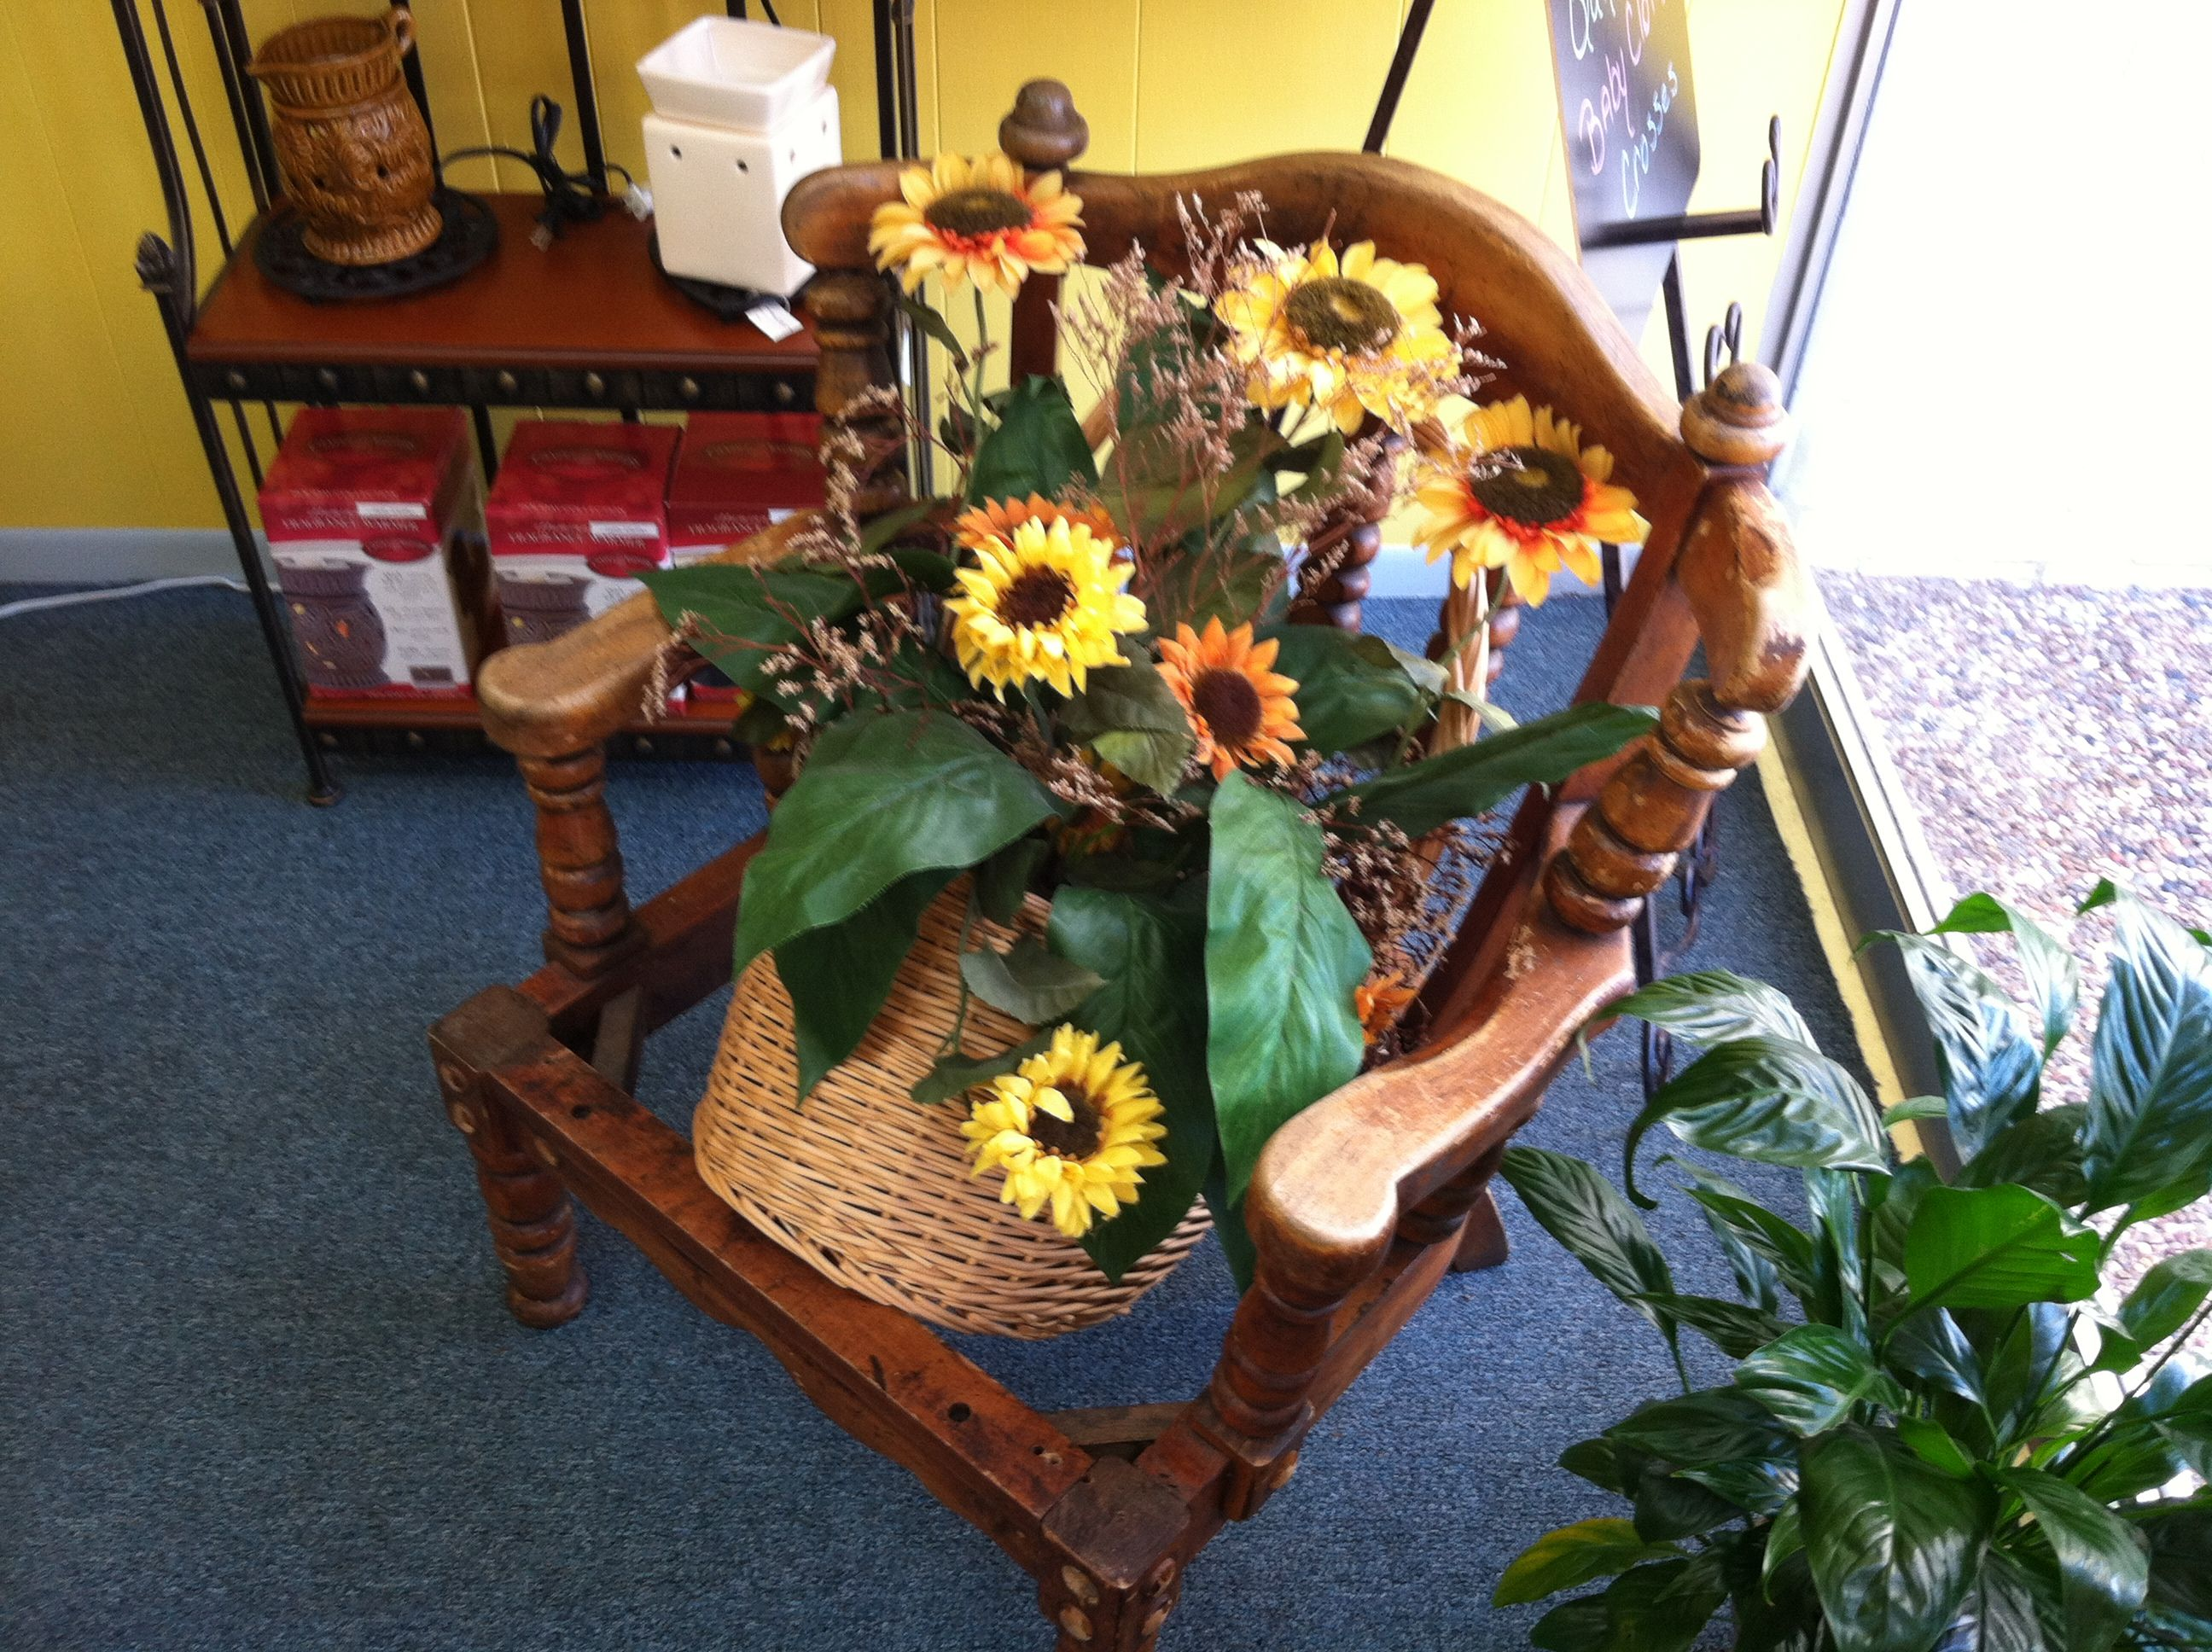 The Olive Branch, a new Grove shop, is blooming this spring.